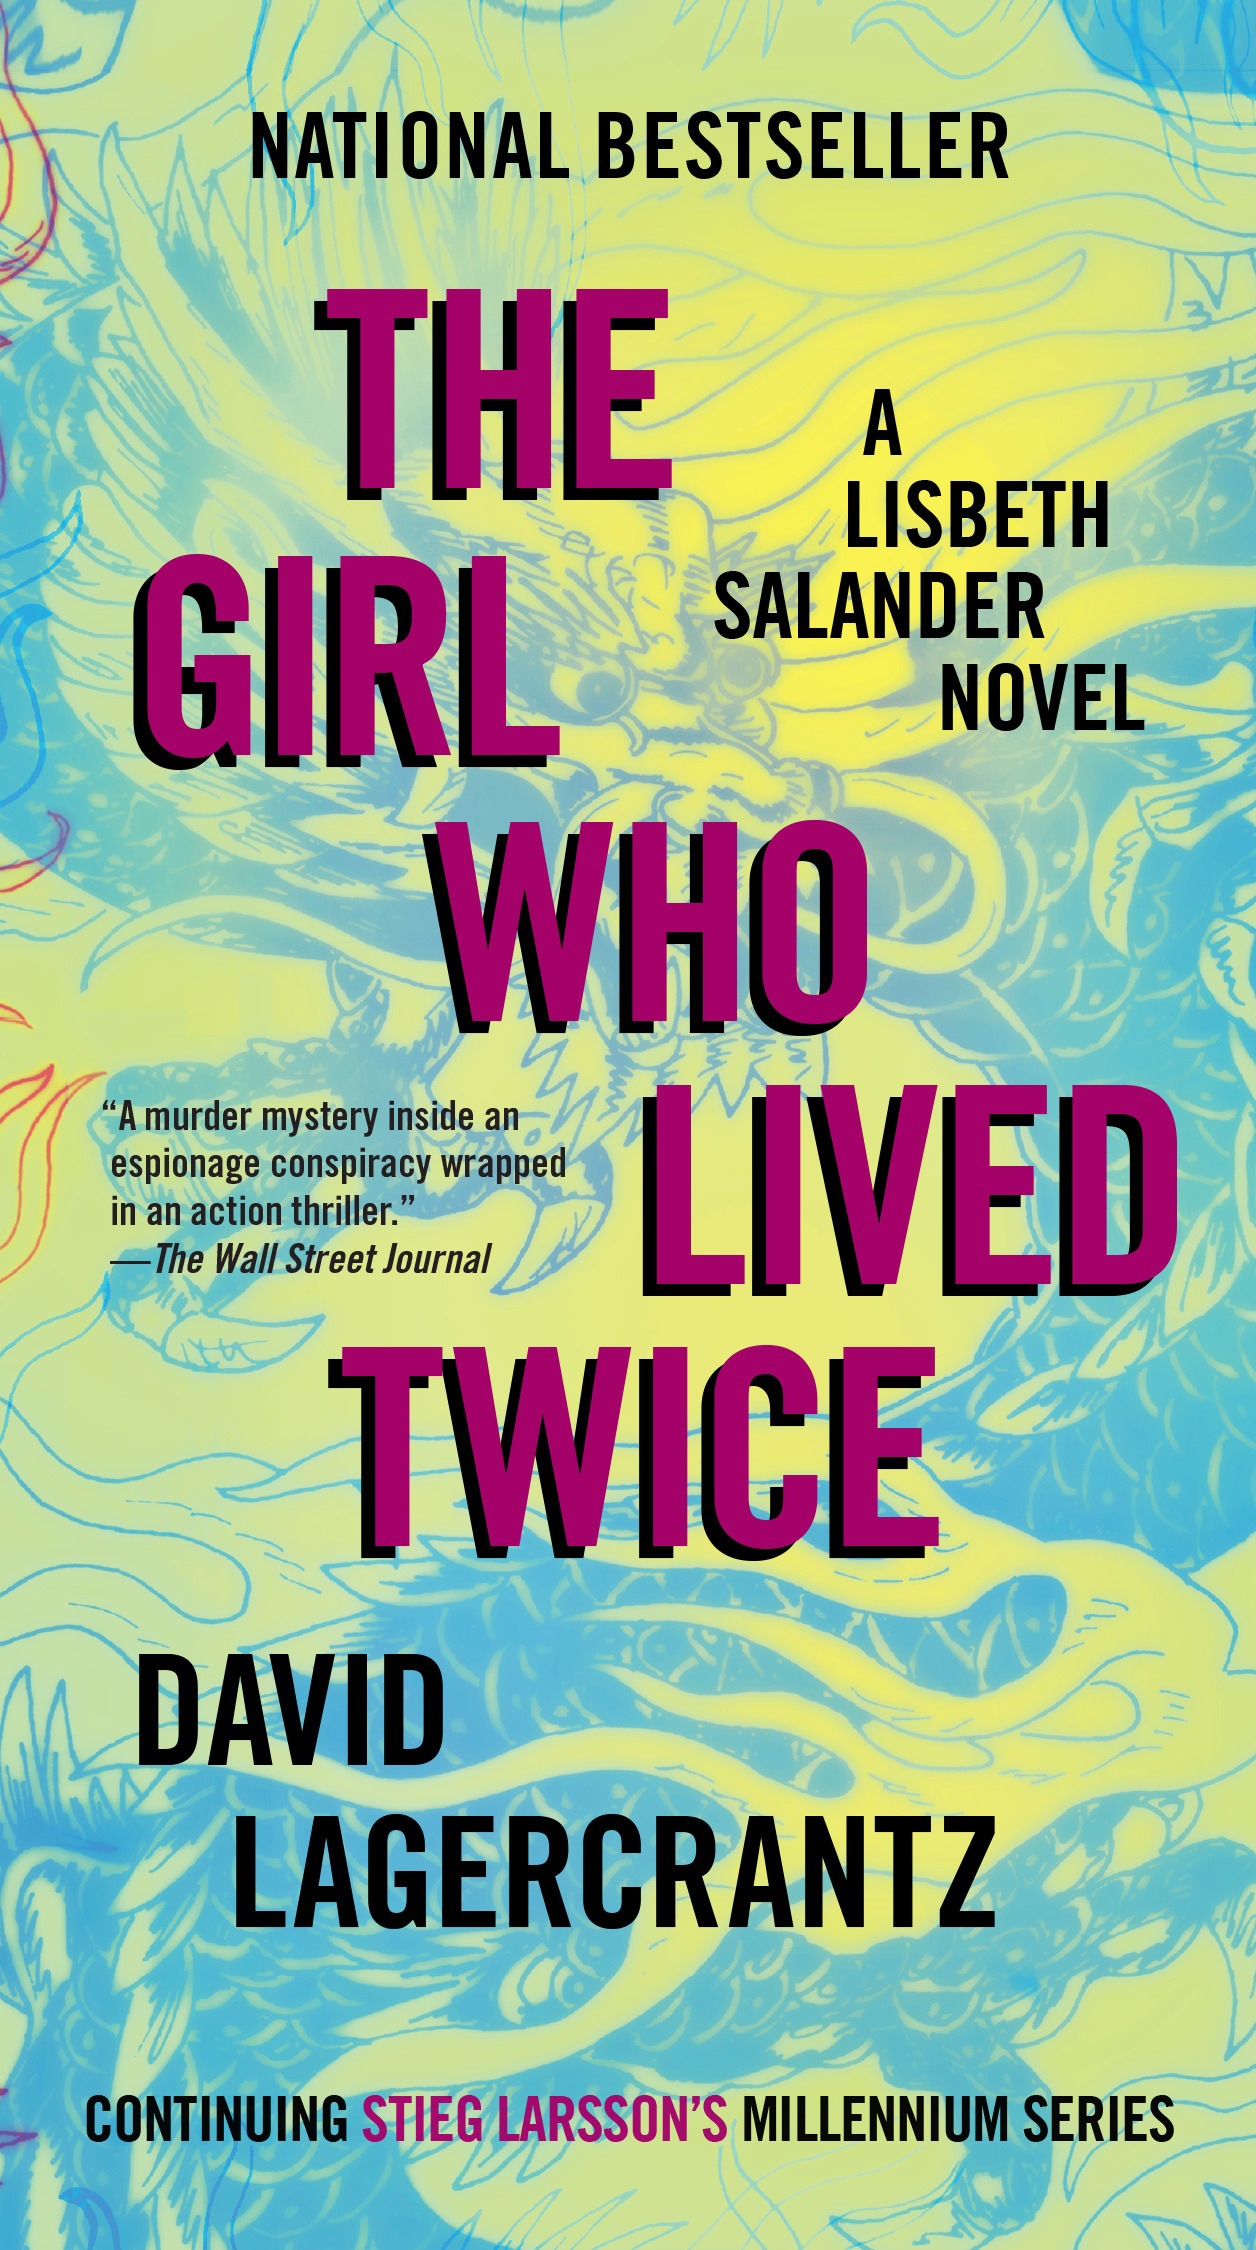 The Girl Who Lived Twice : A Lisbeth Salander novel, continuing Stieg Larsson's Millennium Series | Thriller